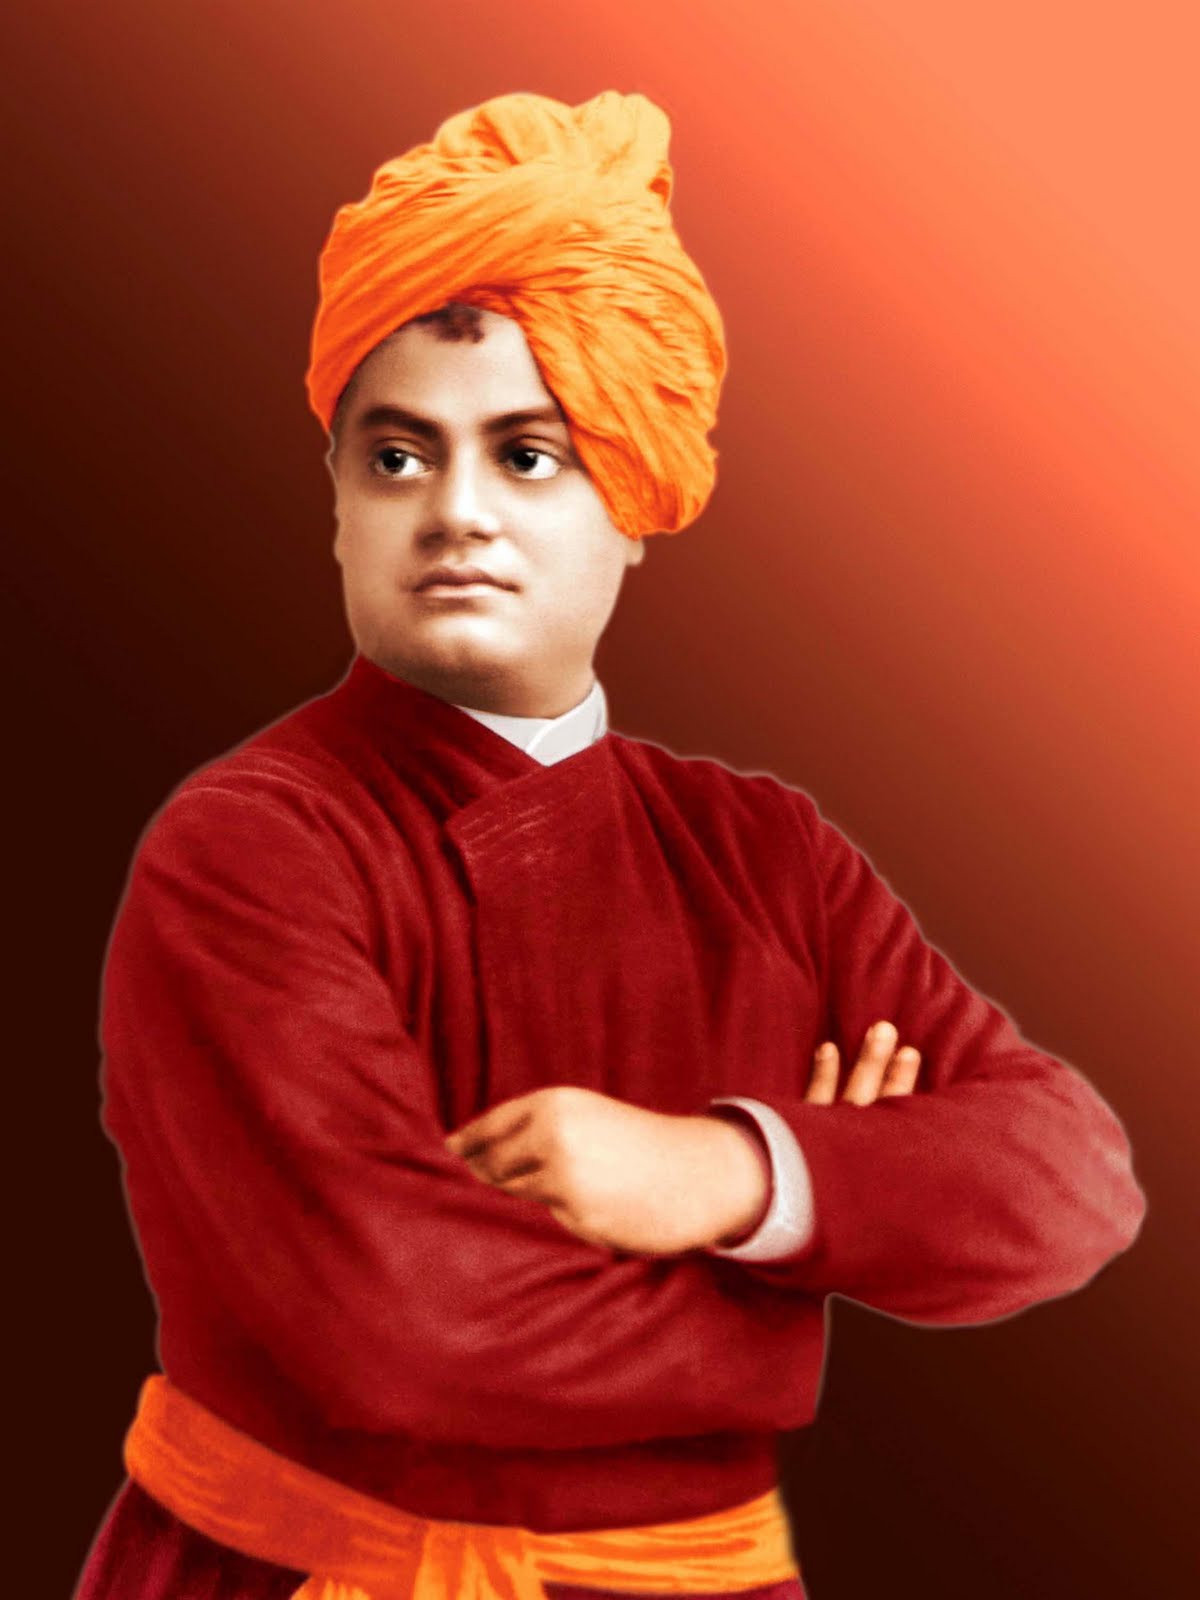 Swami Vivekanand Hd Images For Desktop Pc Background - Swami Vivekananda Hd , HD Wallpaper & Backgrounds